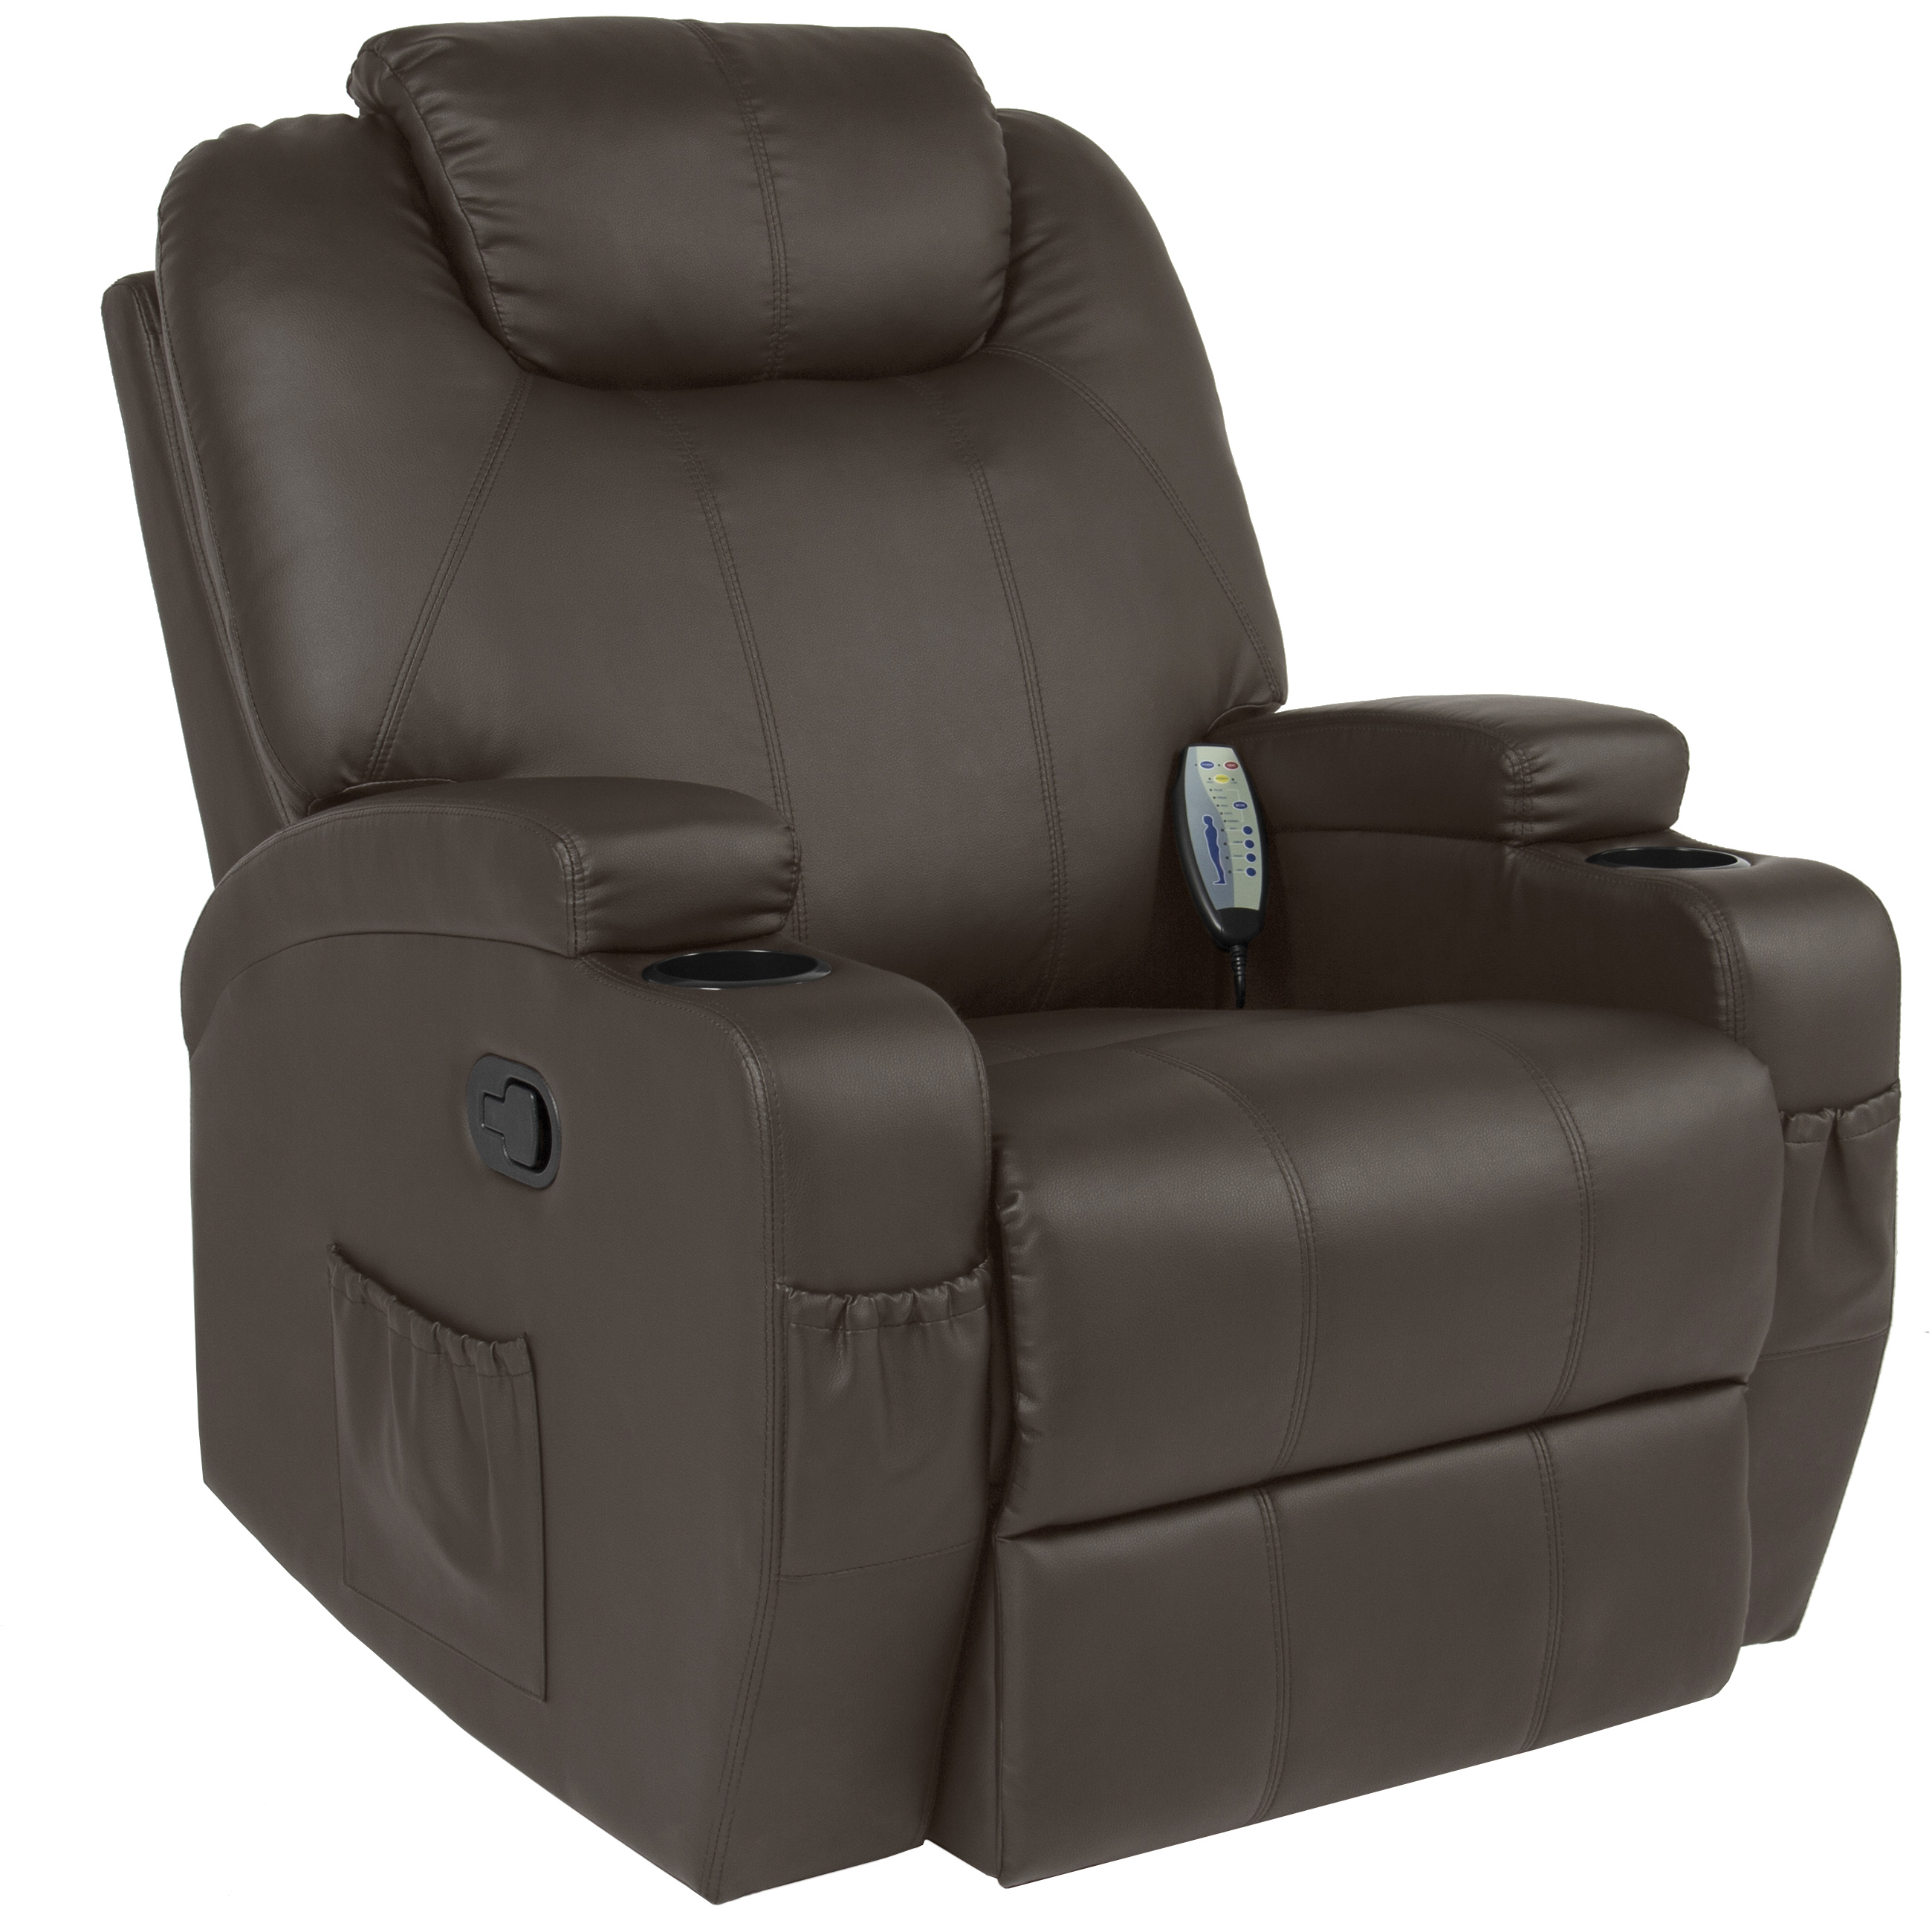 chairs that swivel and recline car chair covers amazon recliner best choice products executive pu leather electric massage w remote control